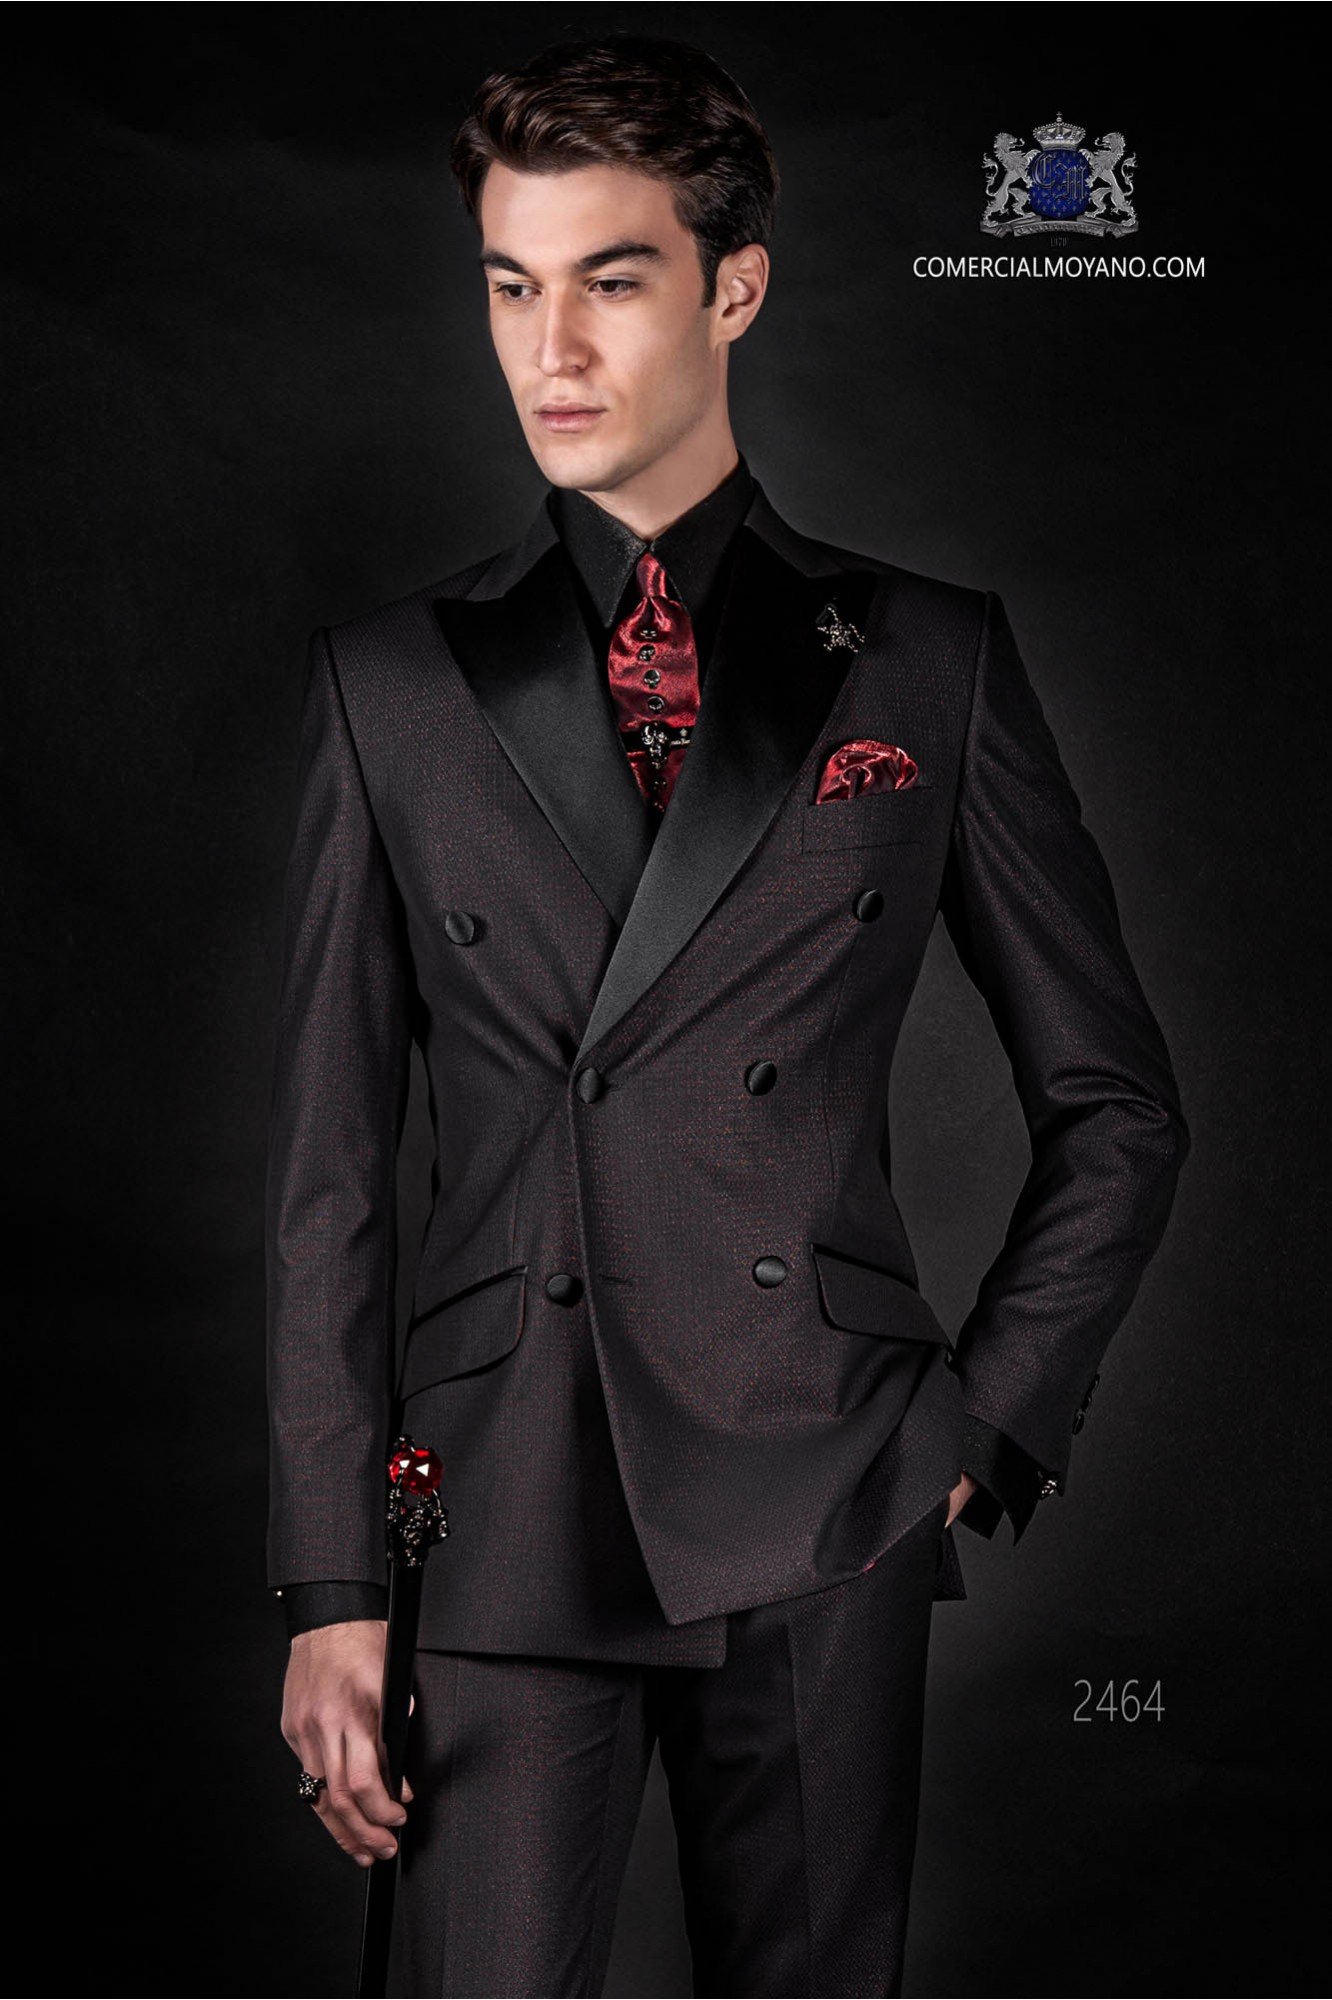 Italian fashion double breasted suit Slim fit. Satin peak lapels and 6 buttons. Shiny red Fabric.